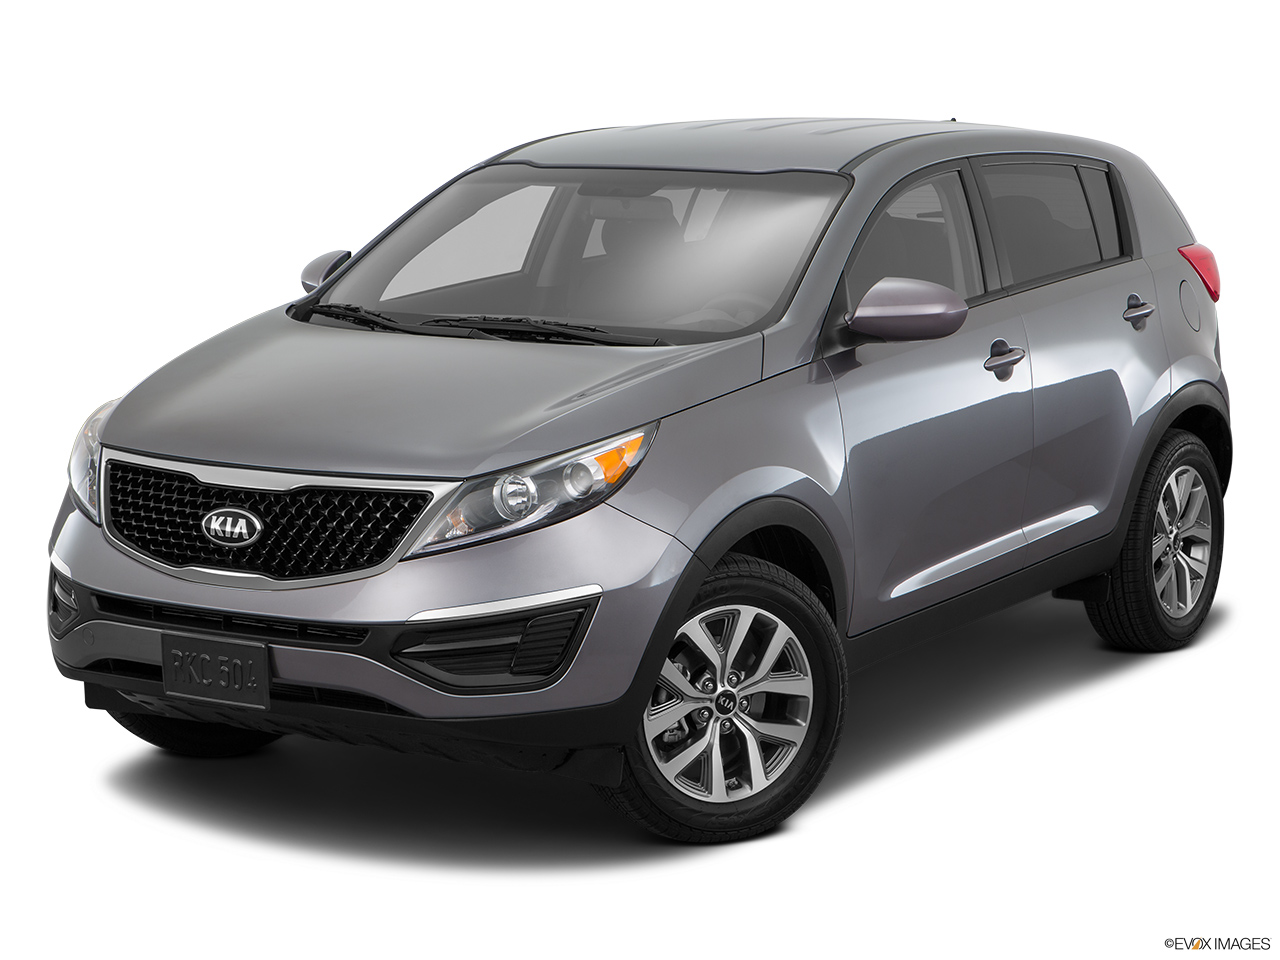 2016 kia sportage prices in uae gulf specs reviews for dubai abu dhabi and sharjah yallamotor. Black Bedroom Furniture Sets. Home Design Ideas